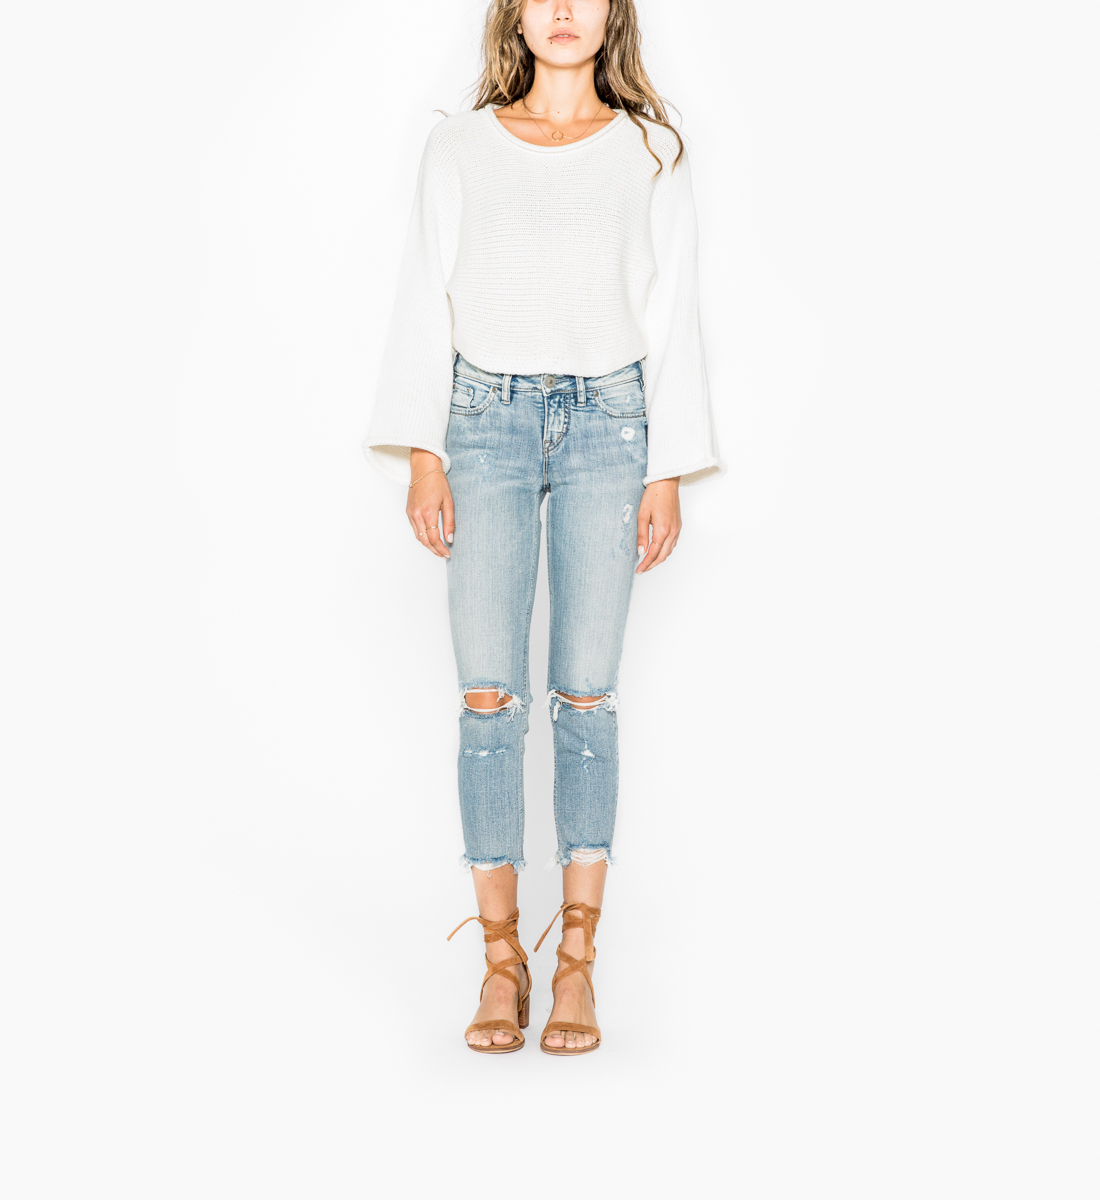 Aiko Slim Crop Light Wash, , hi-res